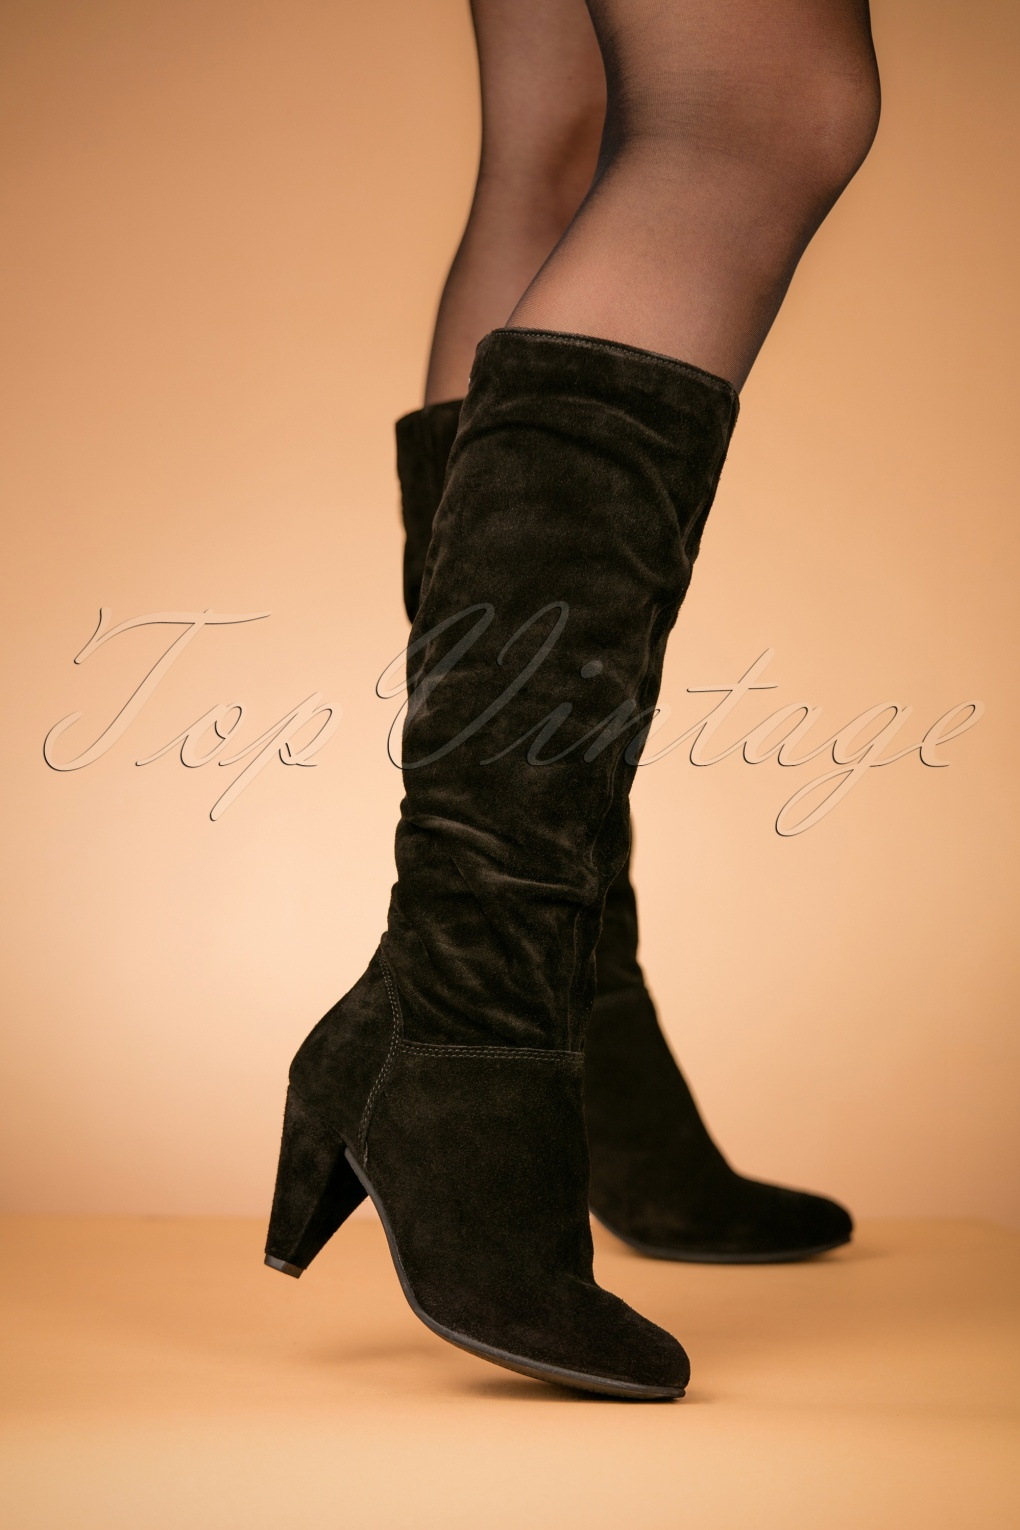 Retro Boots, Granny Boots, 70s Boots 70s Veronica Suede Boots in Black £78.76 AT vintagedancer.com